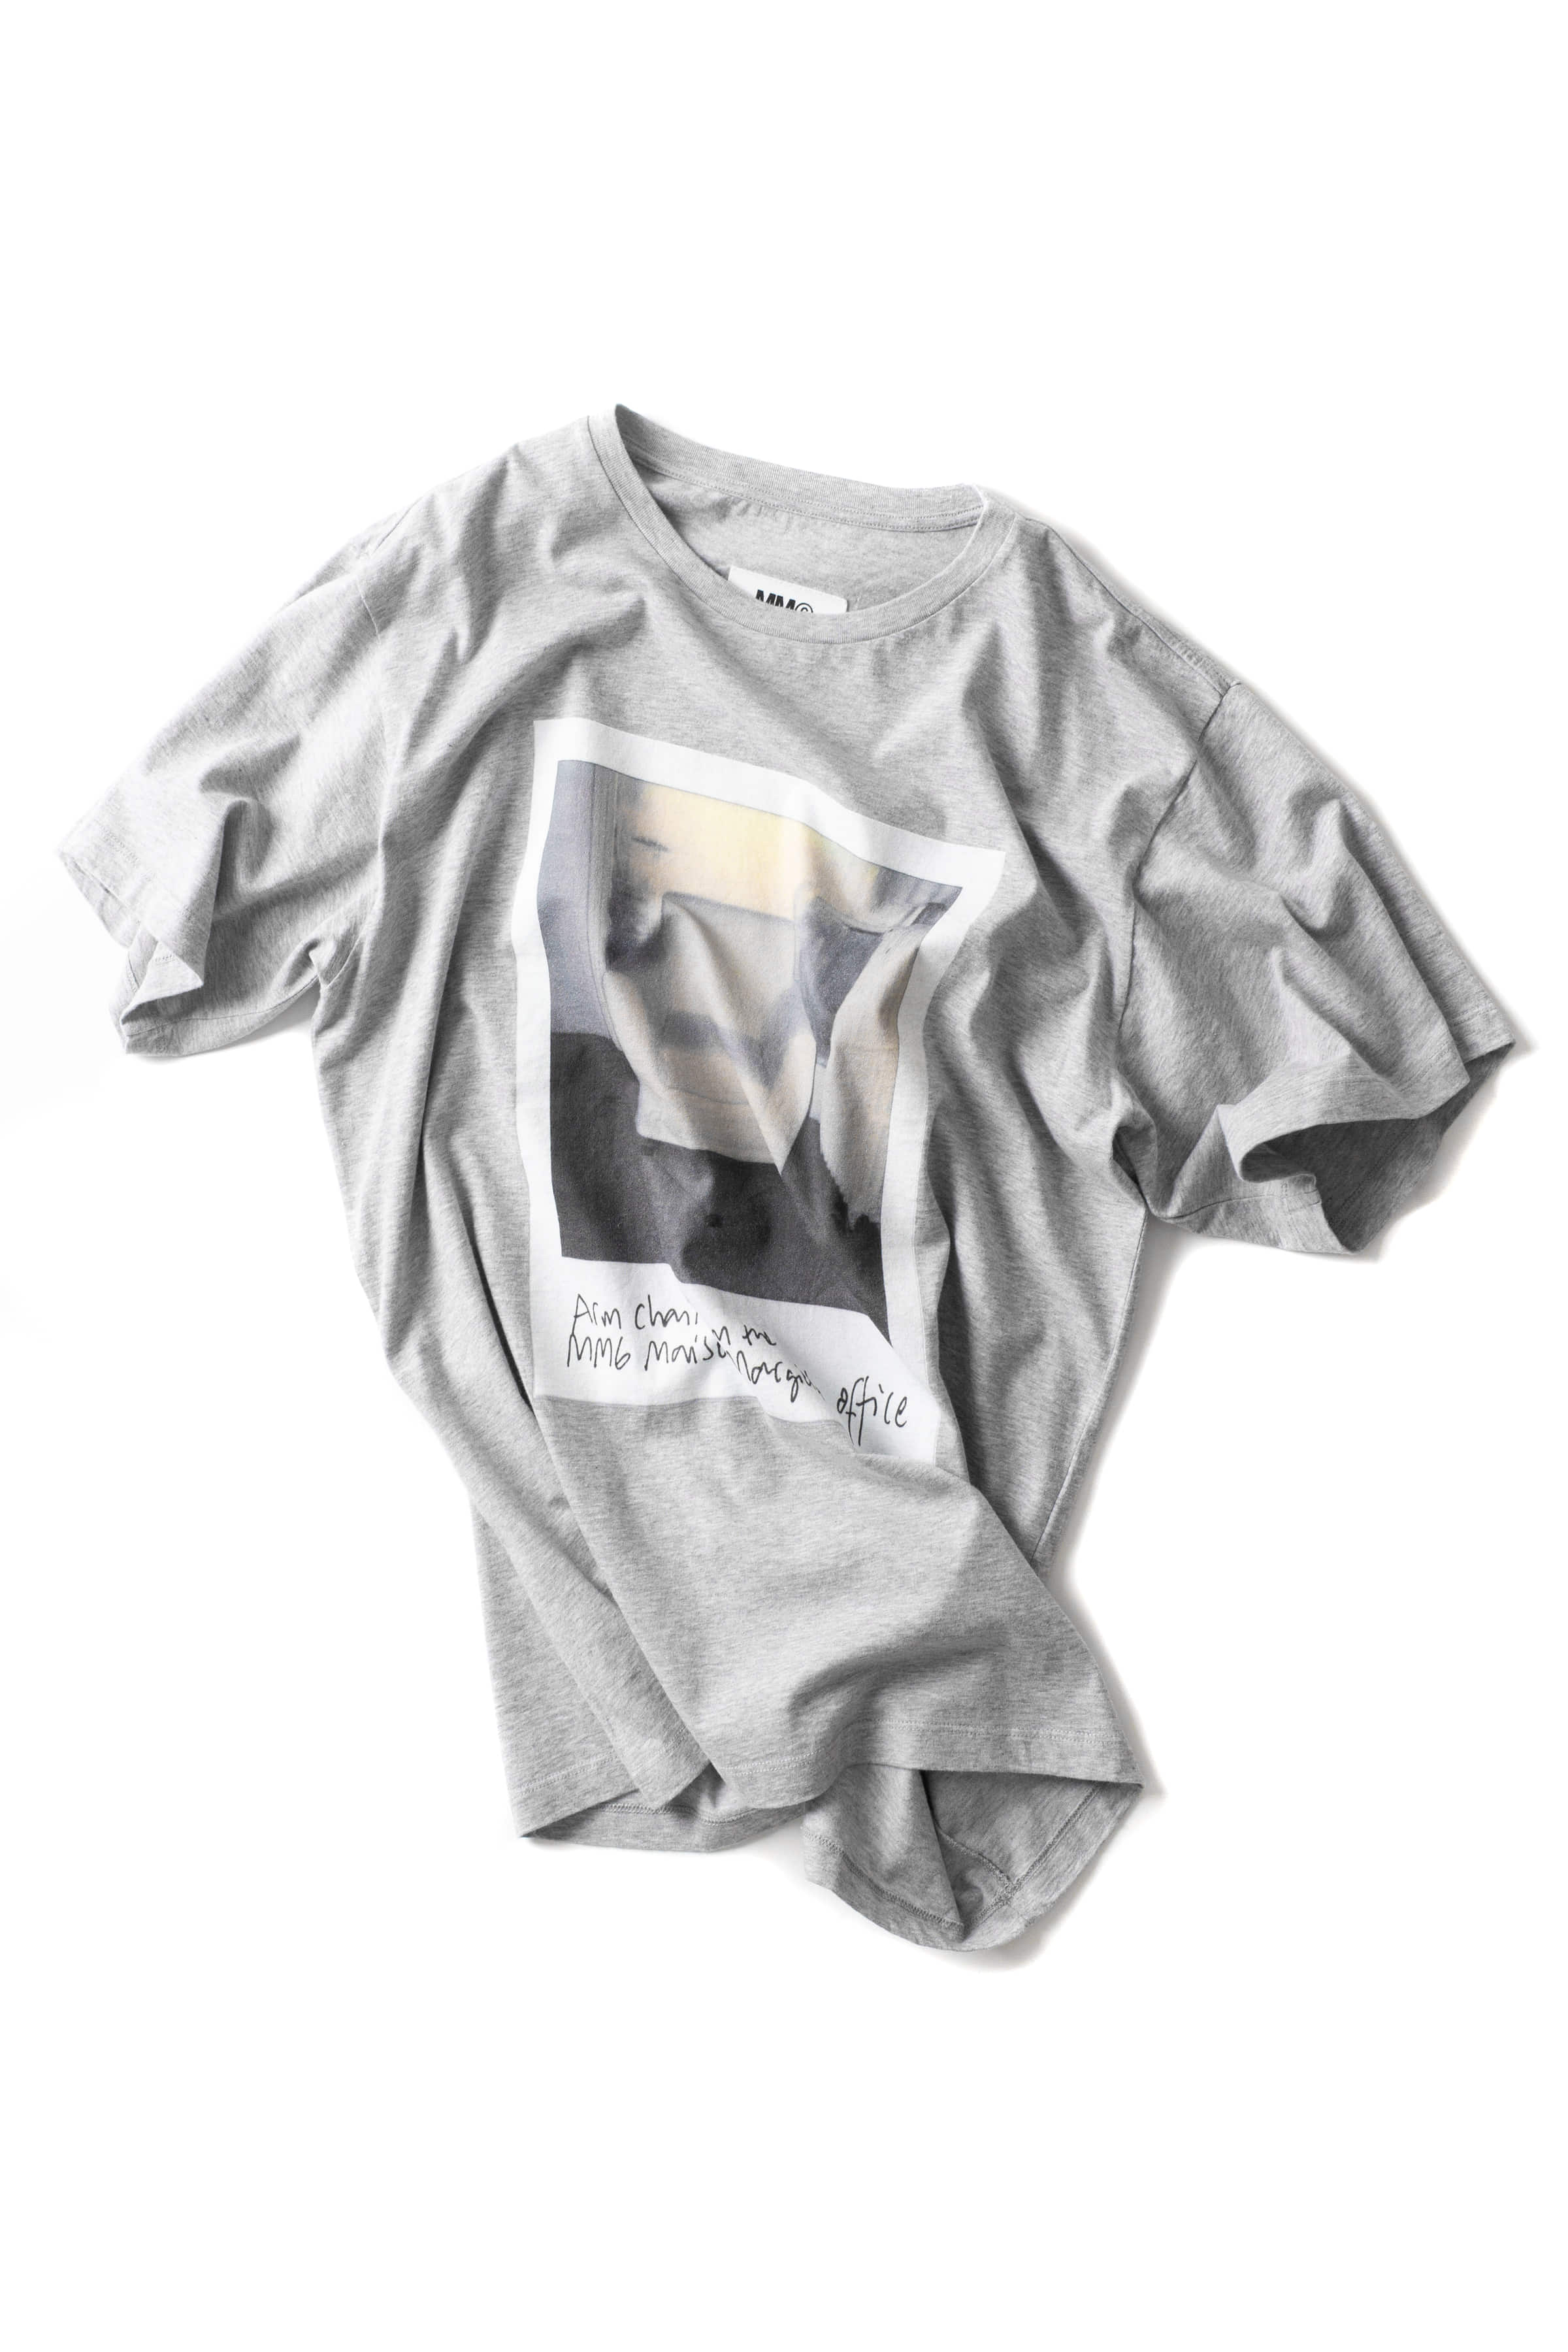 MM6 Maison Margiela : T-Shirt 0508 (Grey)